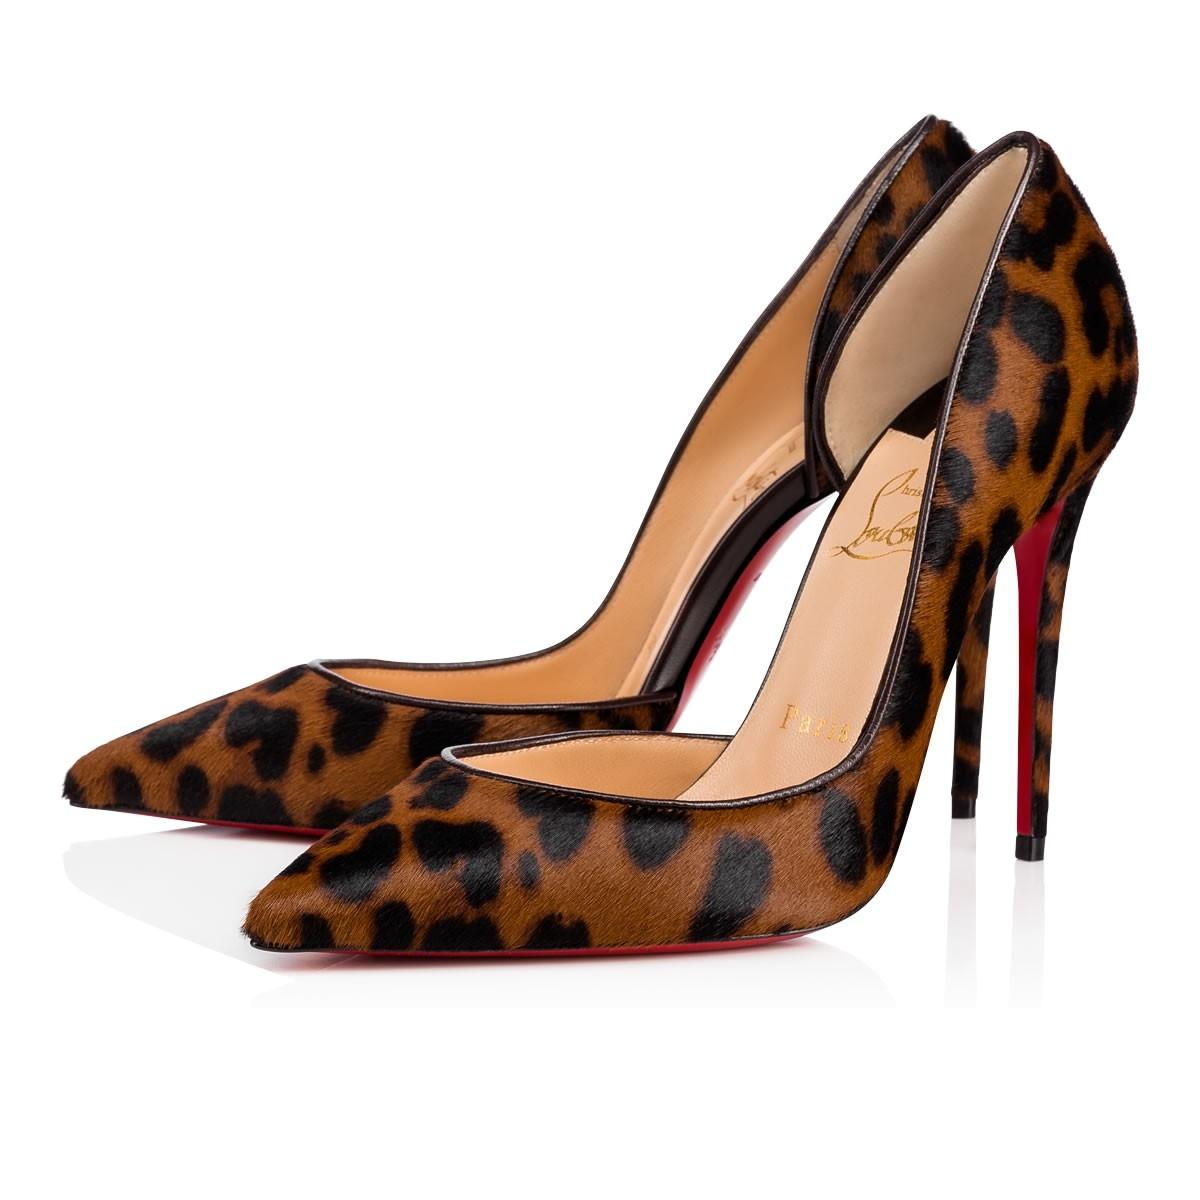 Christian Louboutin Leopard Iriza 100 Brown Pony Pumps Size EU 40.5 (Approx. US 10.5) Regular (M, B)